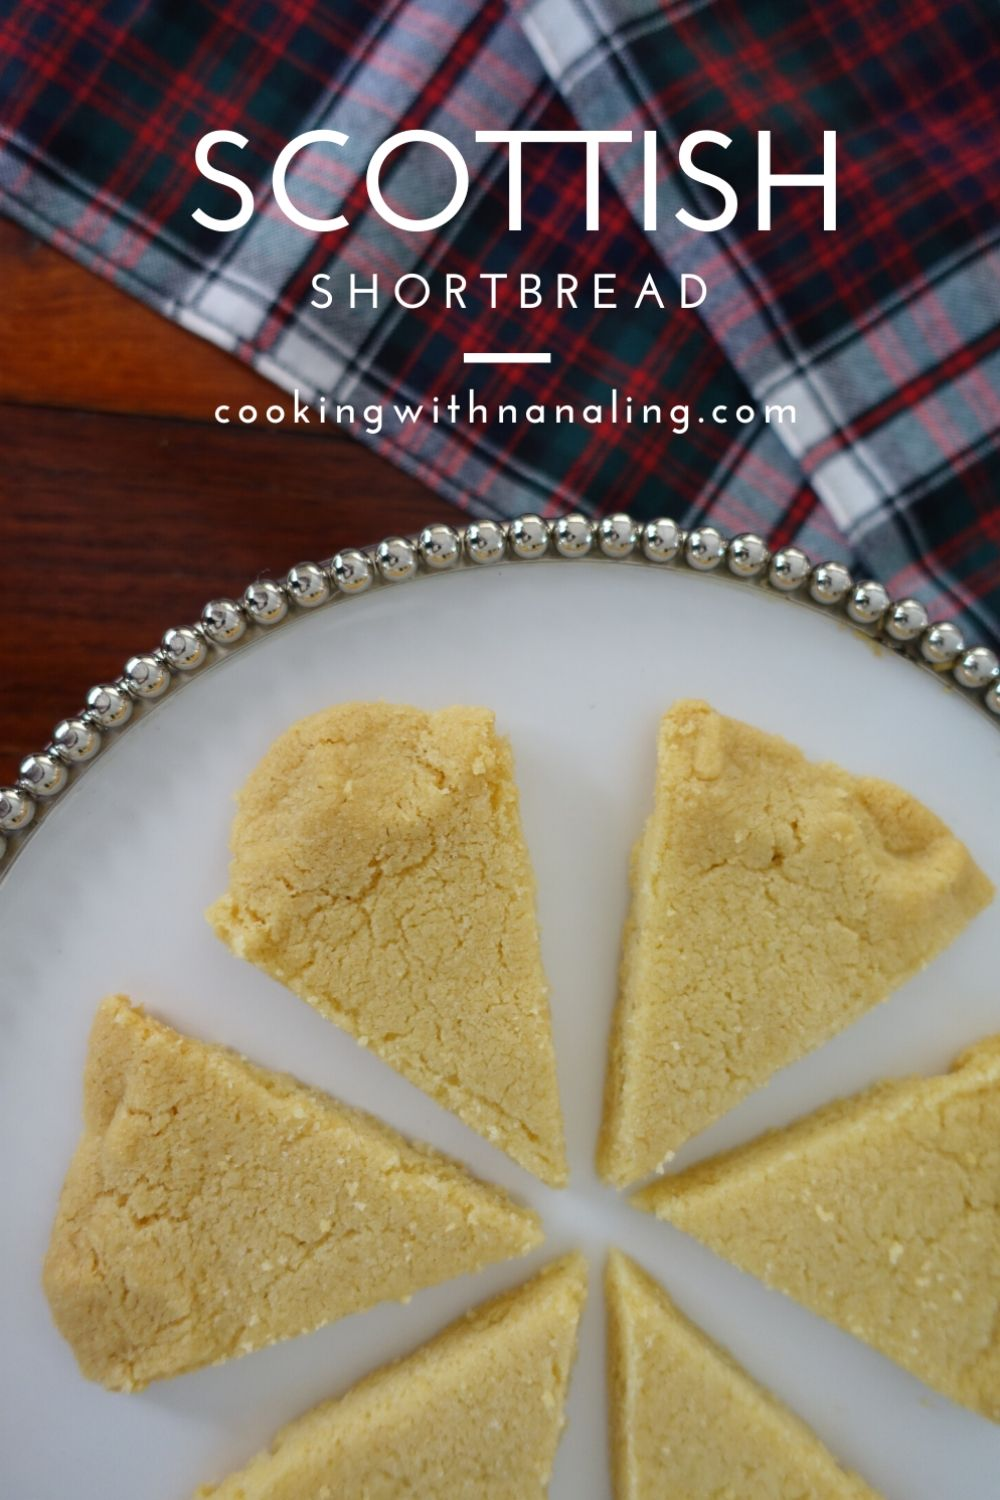 scottish shortbread with tartan background